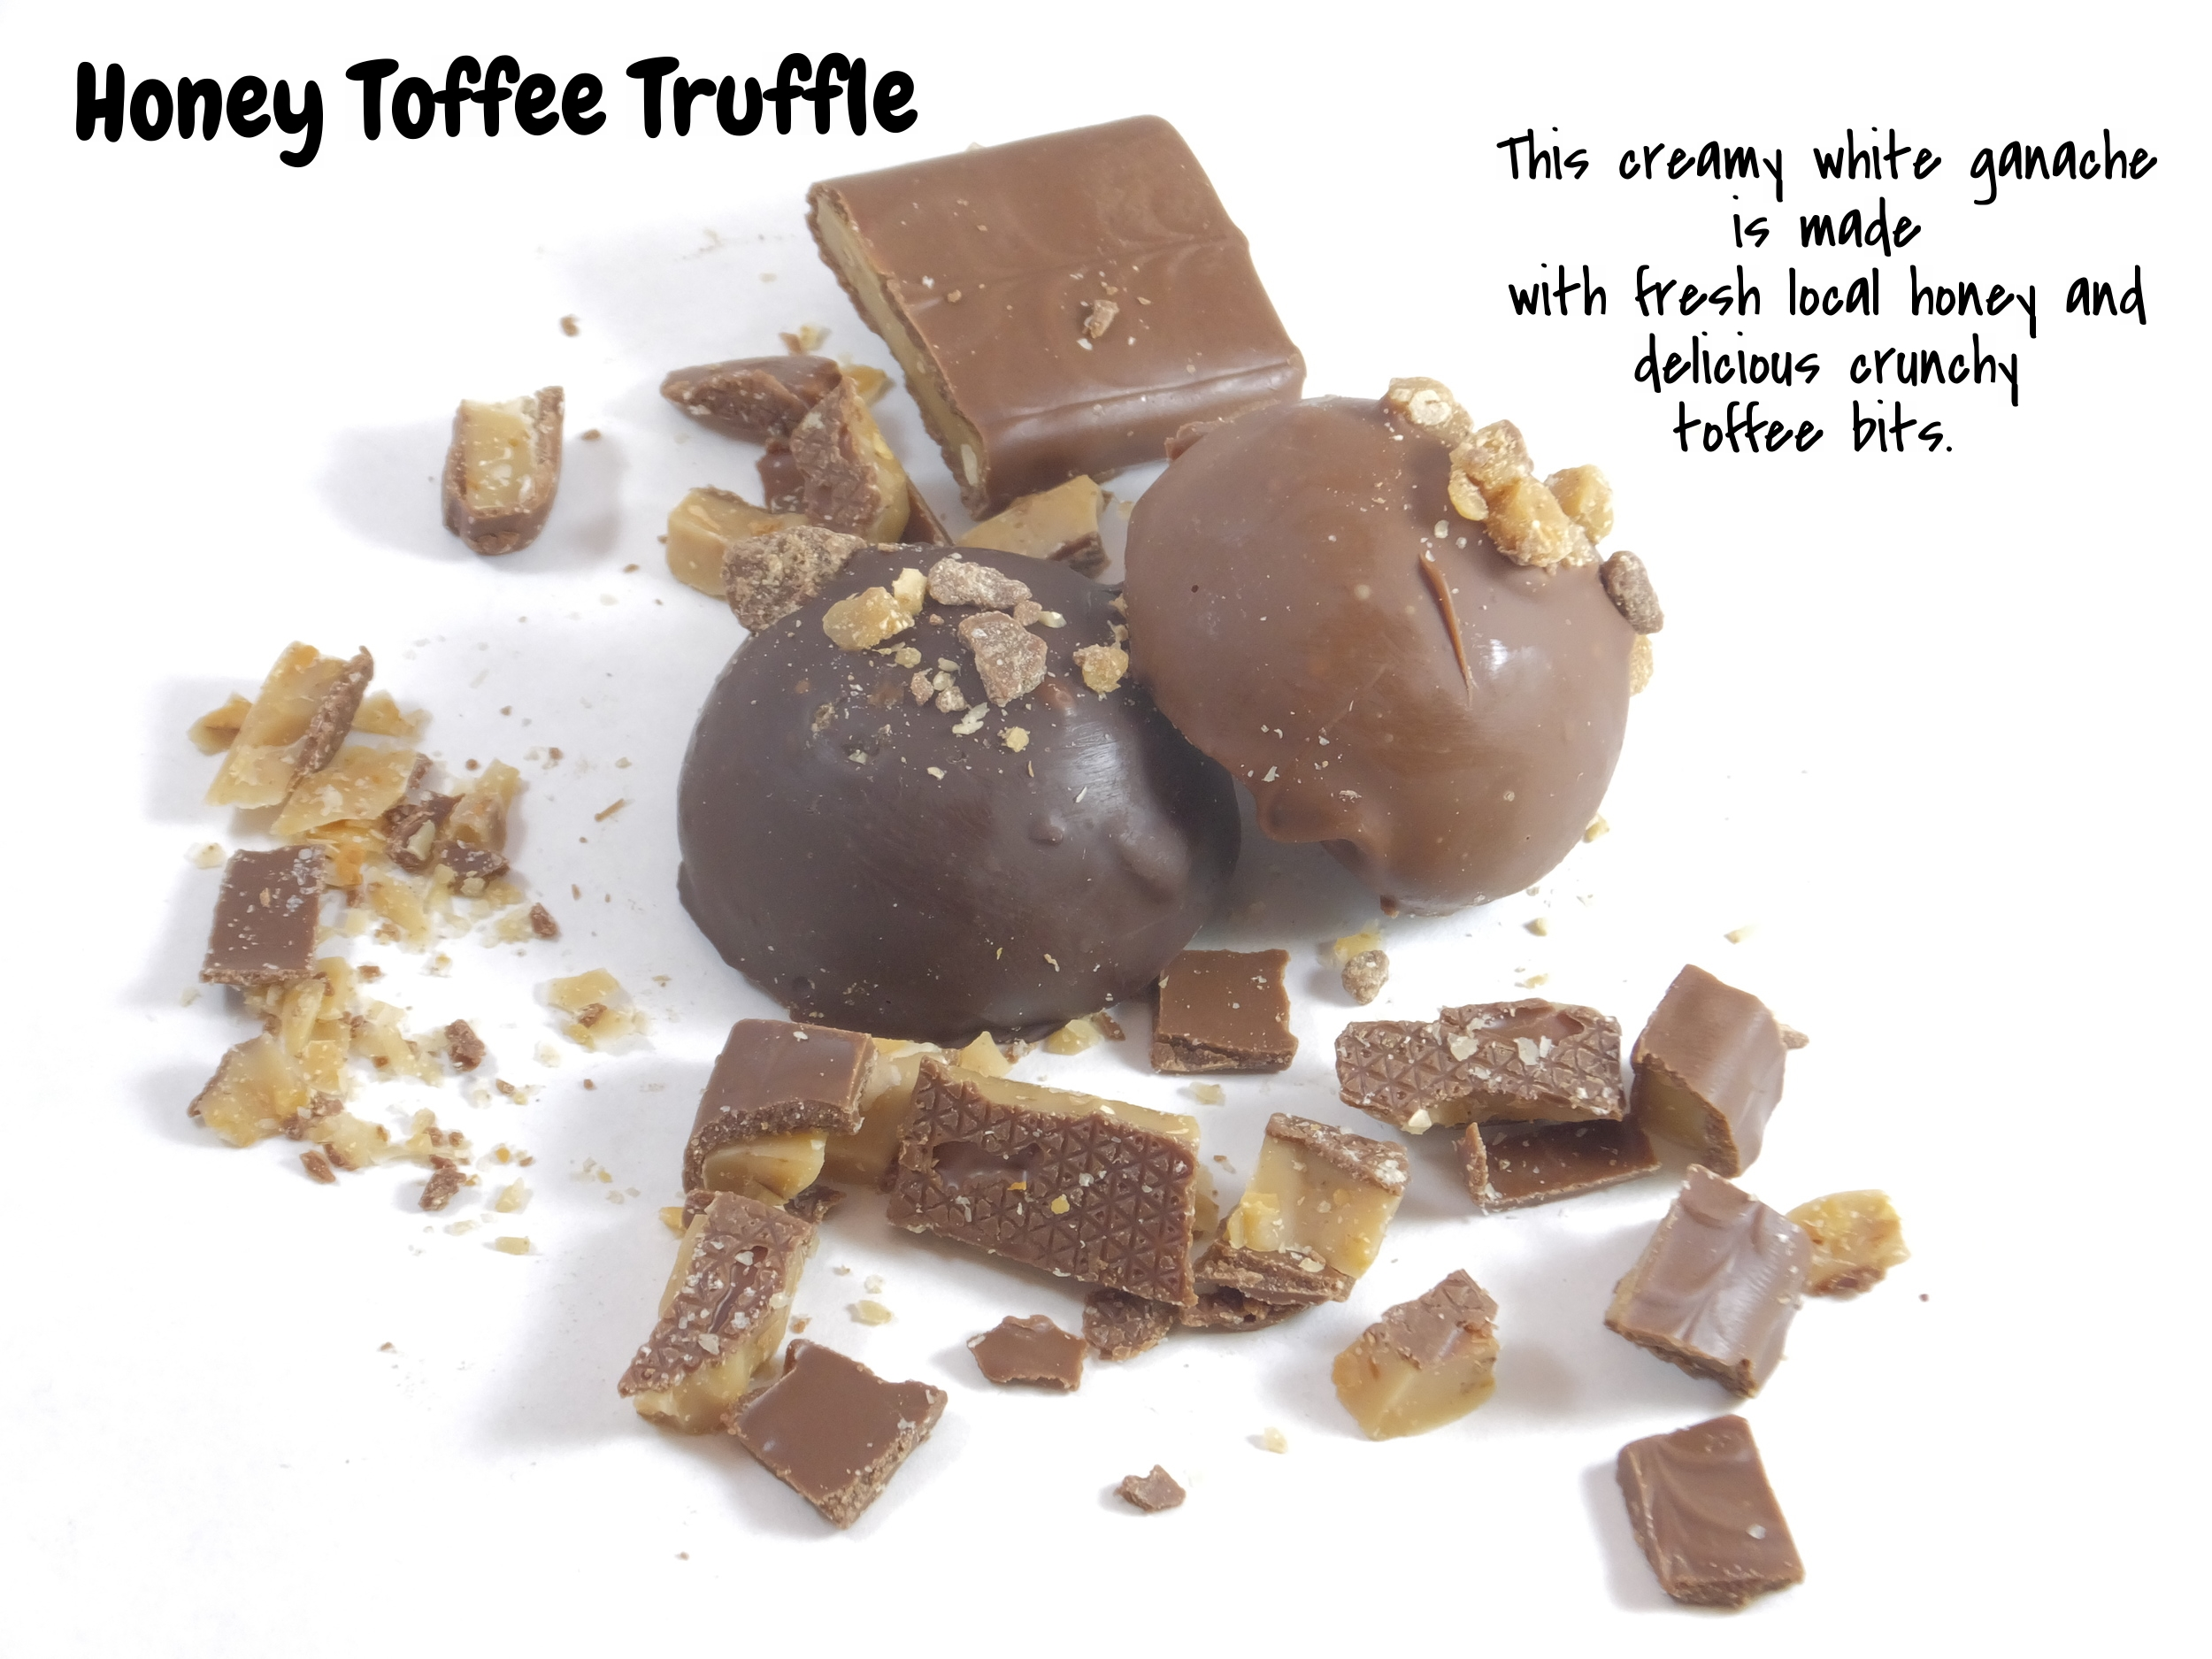 Honey Toffee Truffle